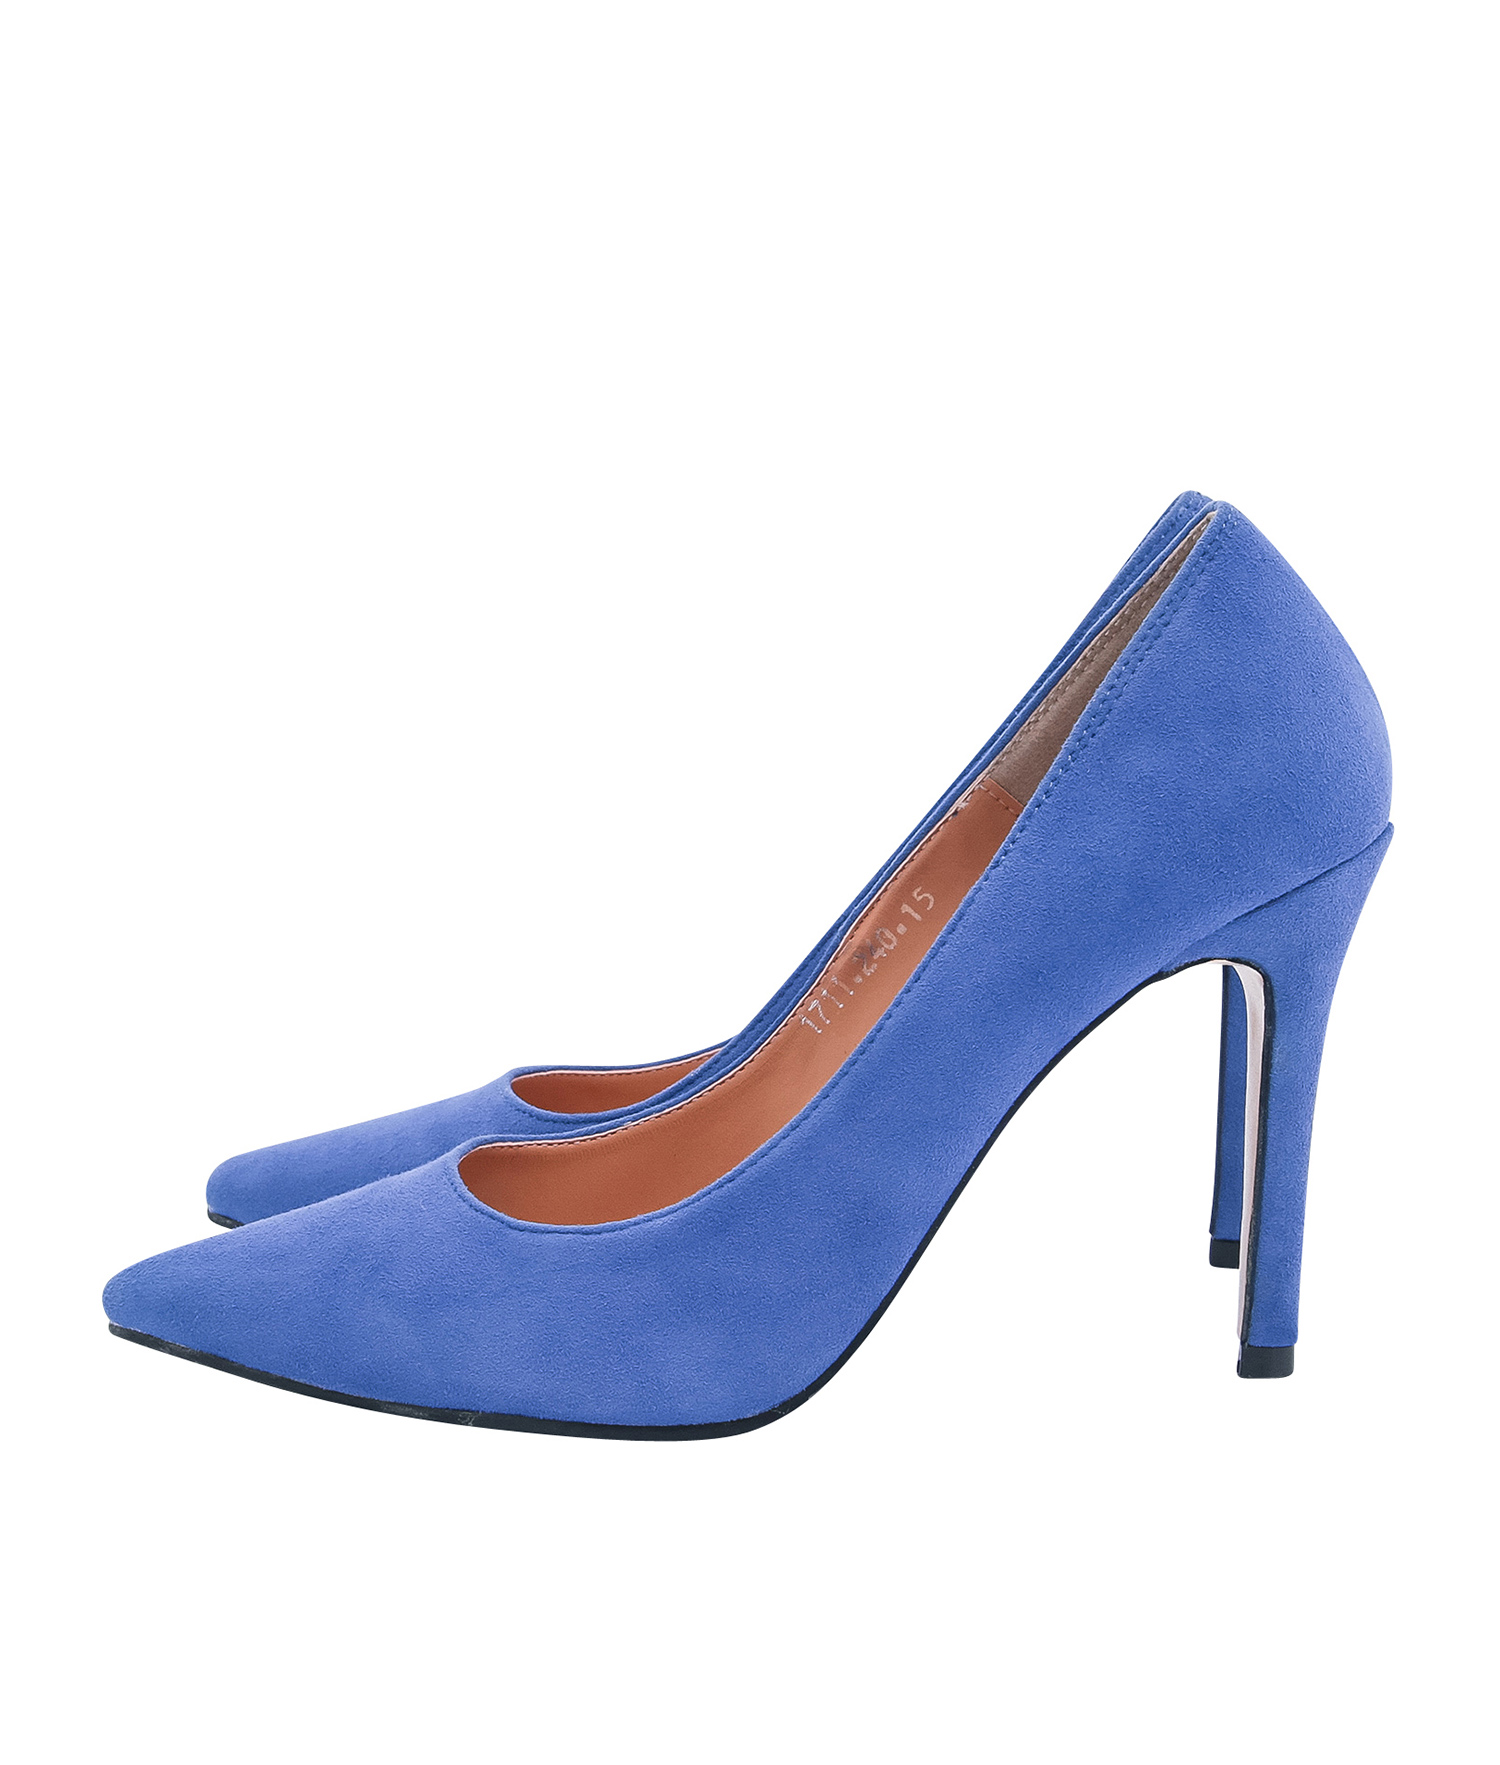 4b67f395d76a AnnaKastle Womens Pointy Toe High Heel Court Shoes Blue